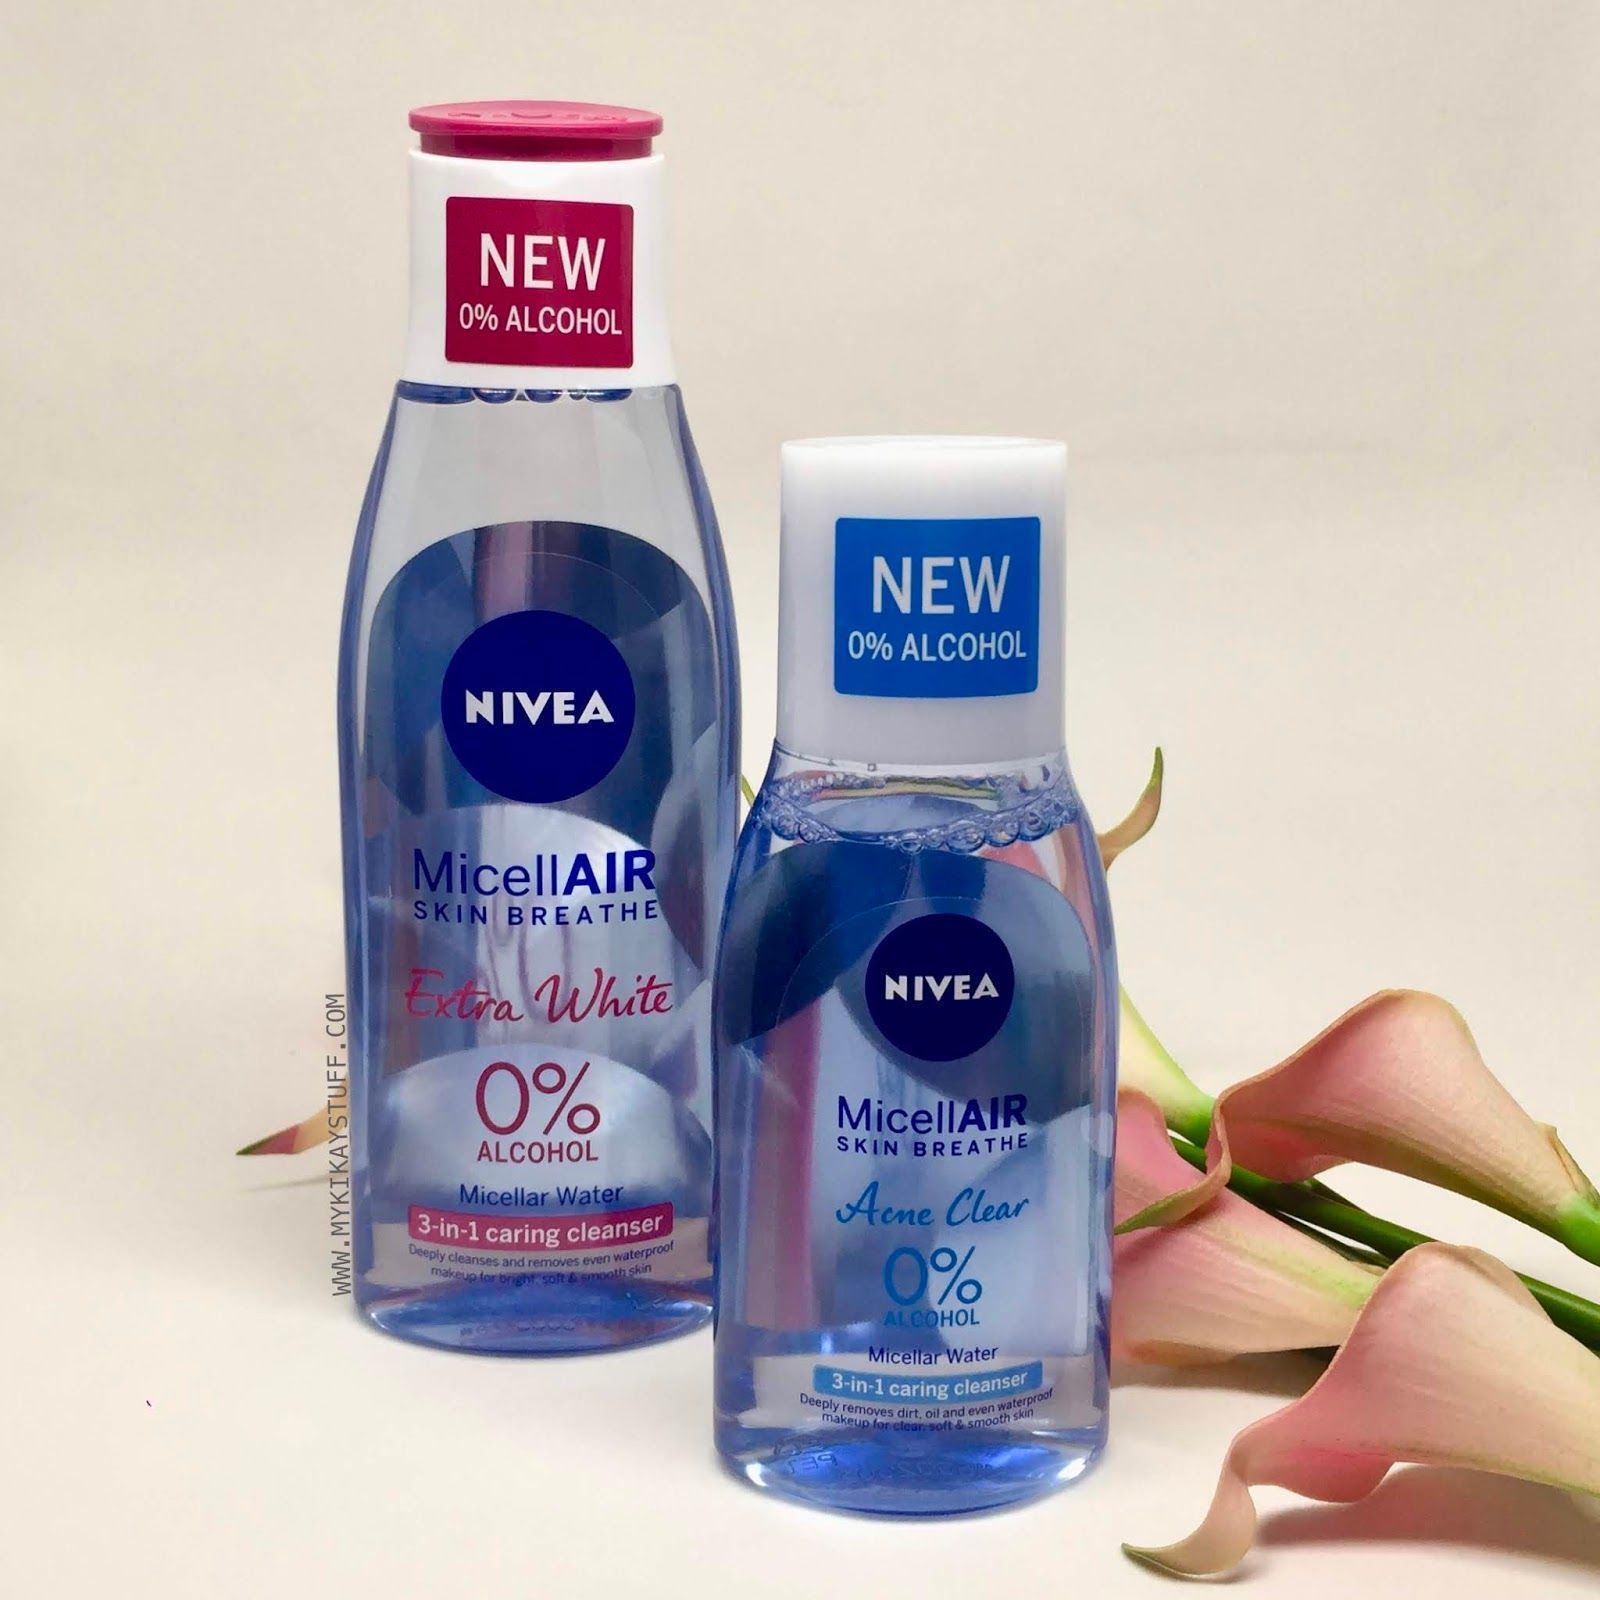 NIVEA Micellair 3in1 Caring Cleanser